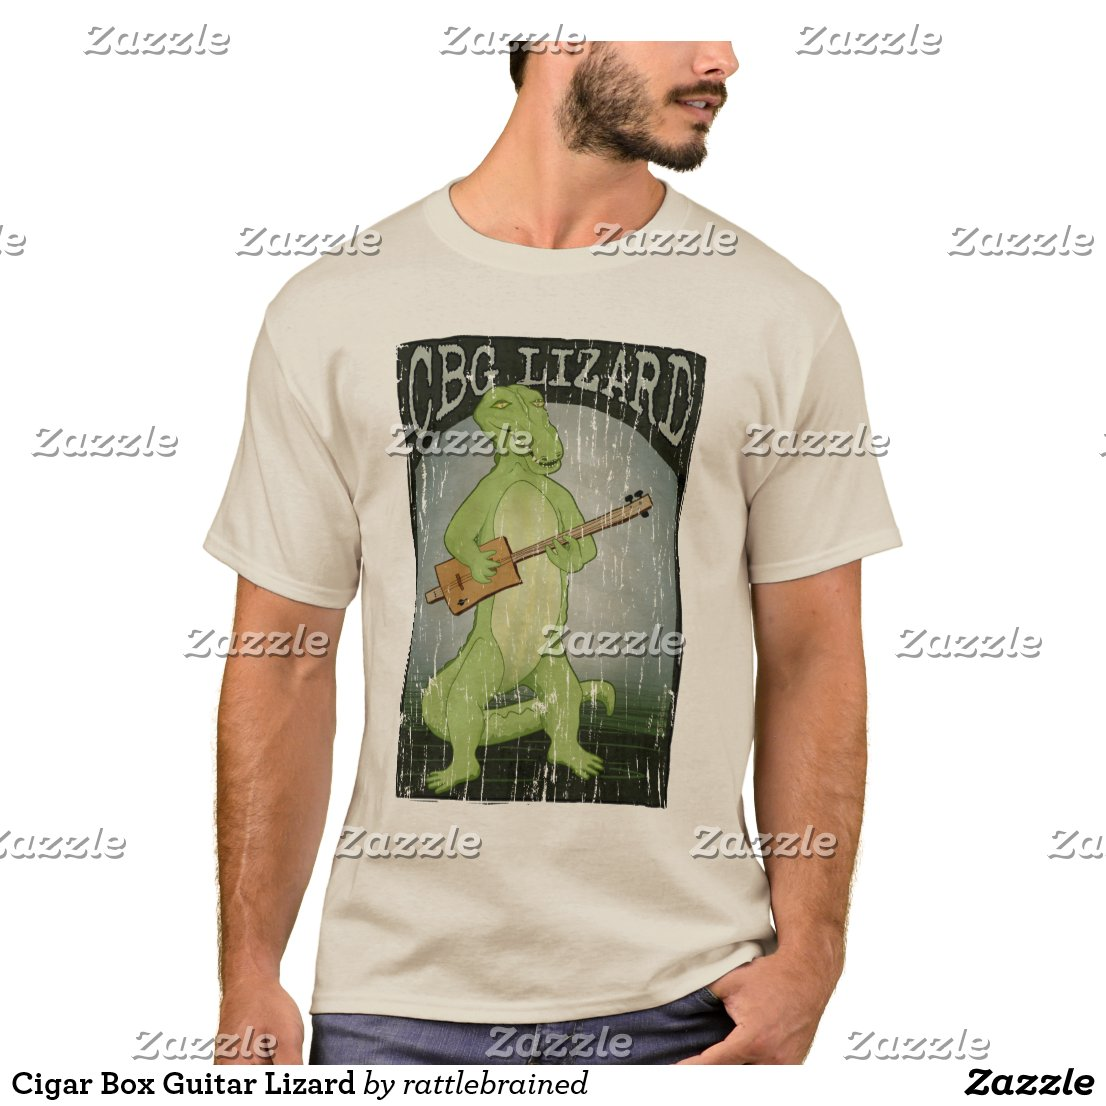 Create your own designs amp sell your design online shirts zazzle - Cigar Box Guitar Lizard